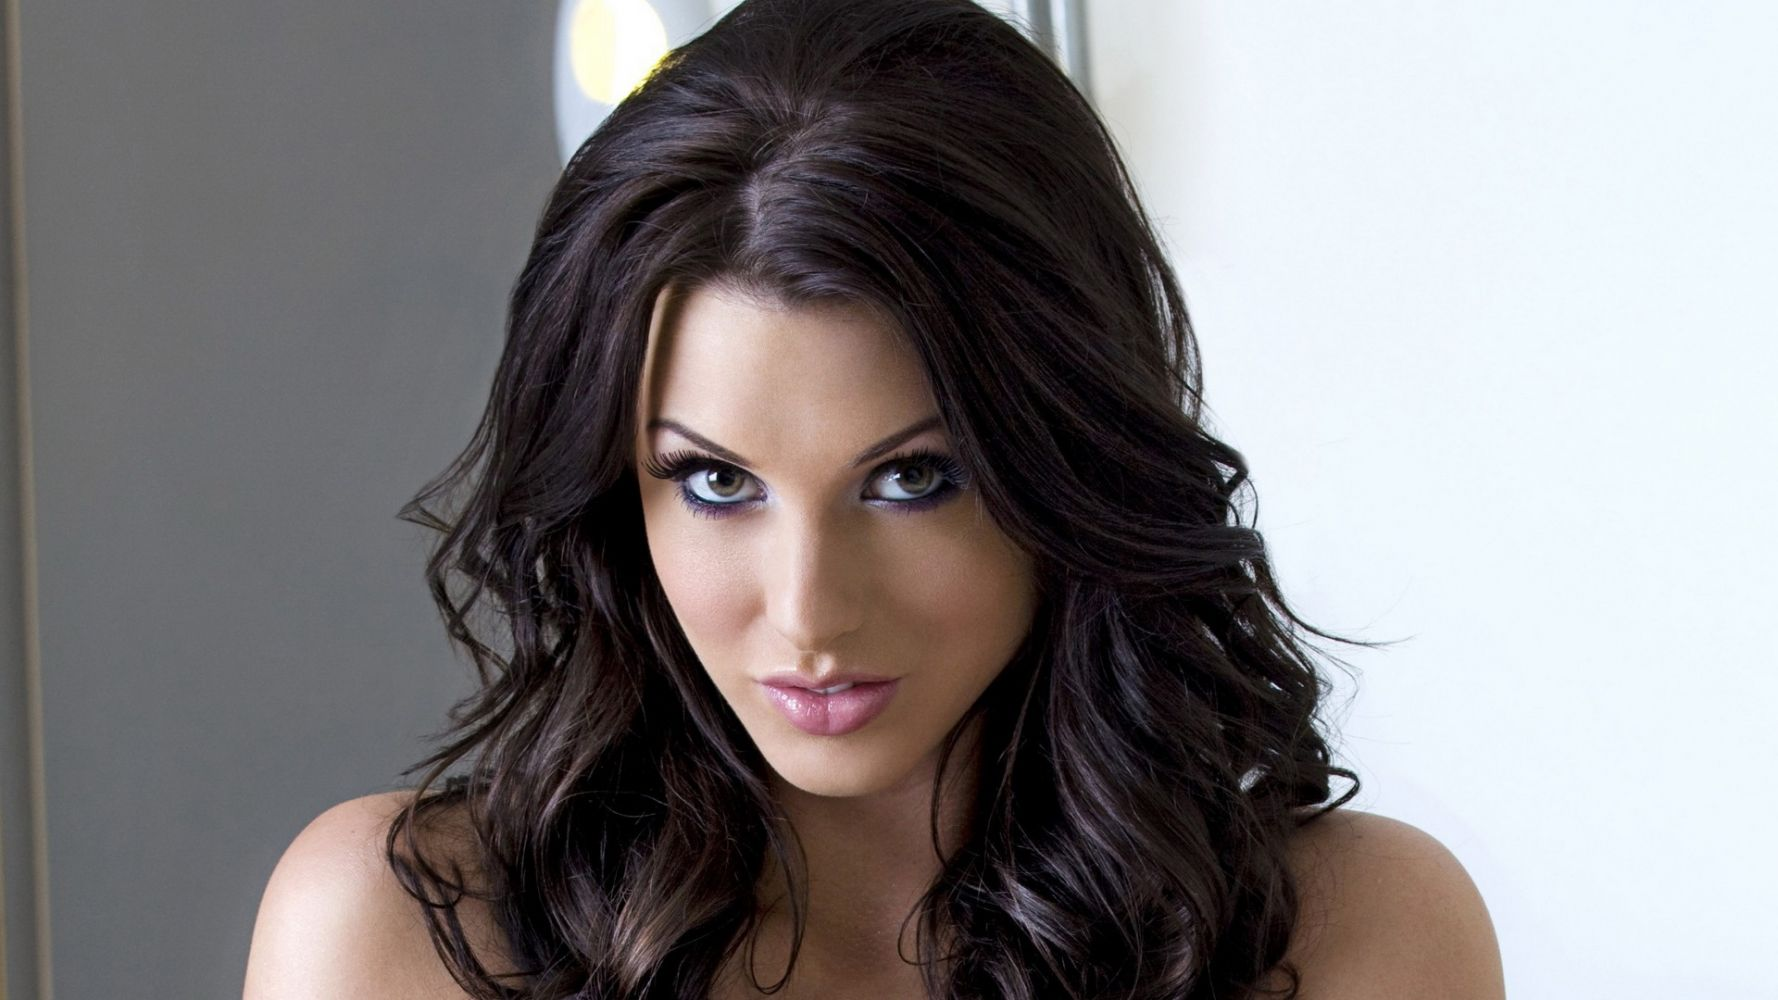 Girls With Dark Hair And Light Eyes Are A Rare Sight